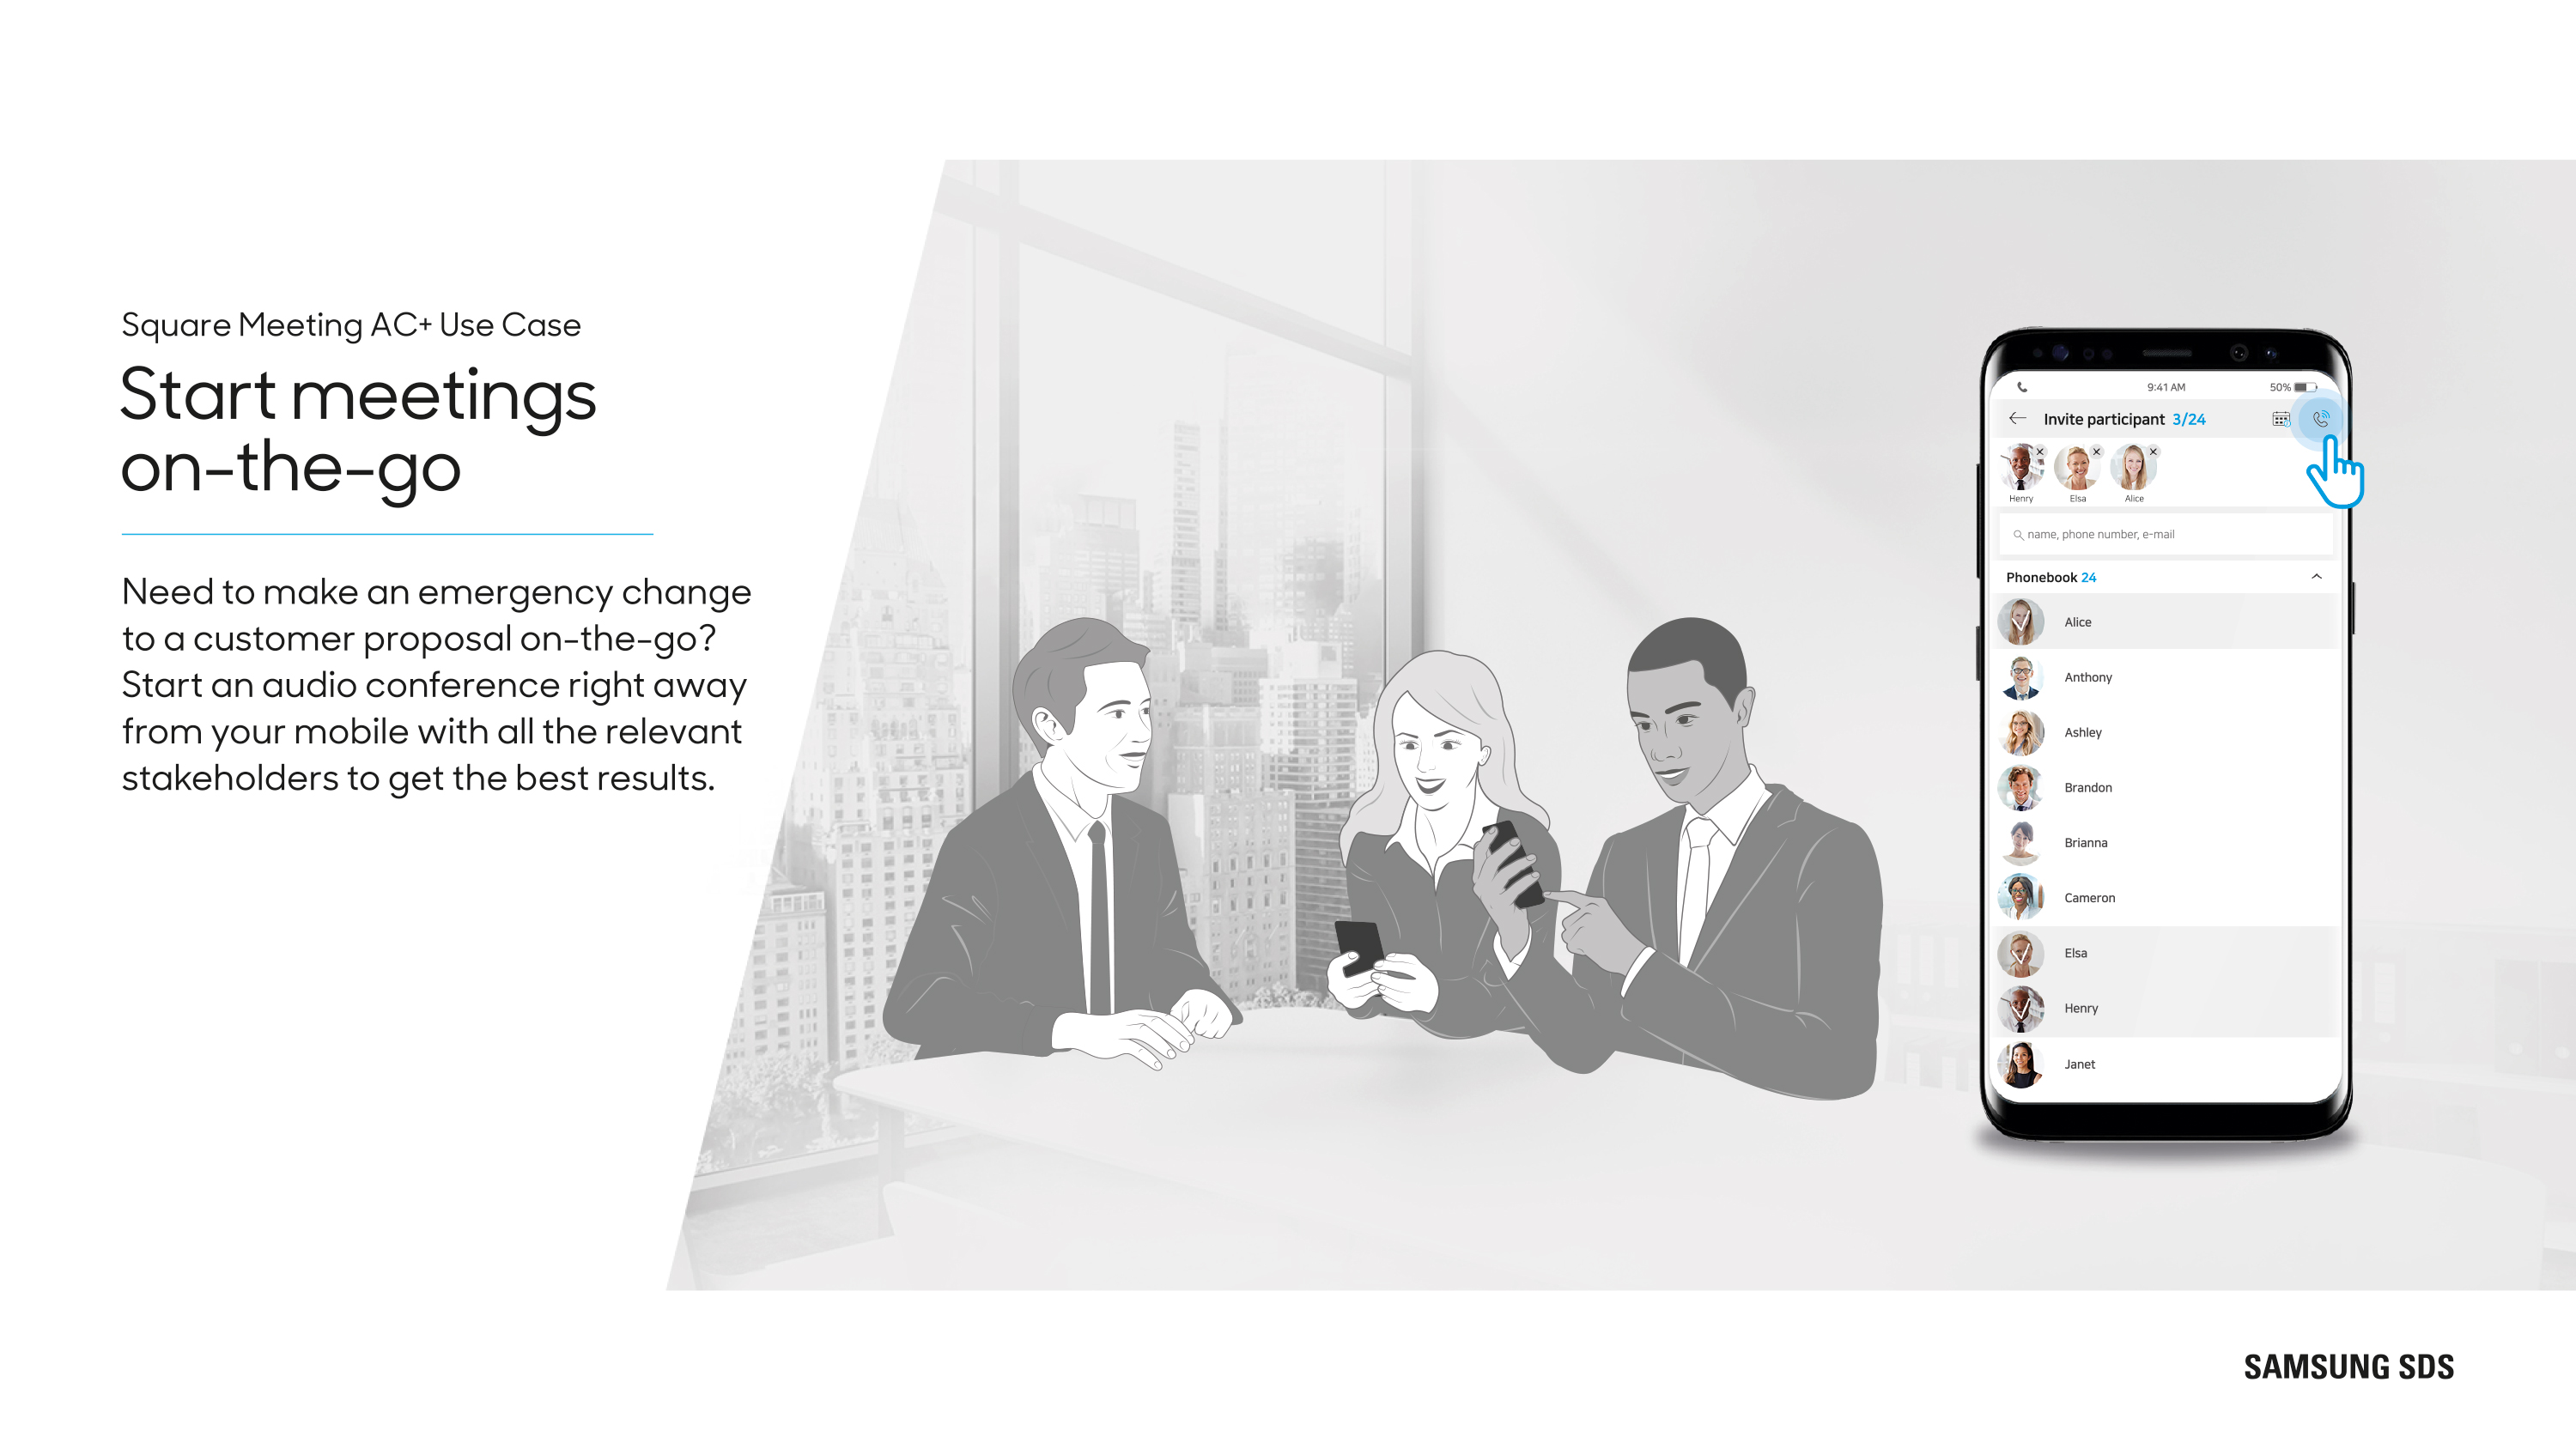 Start meetings on-the-go from your mobile